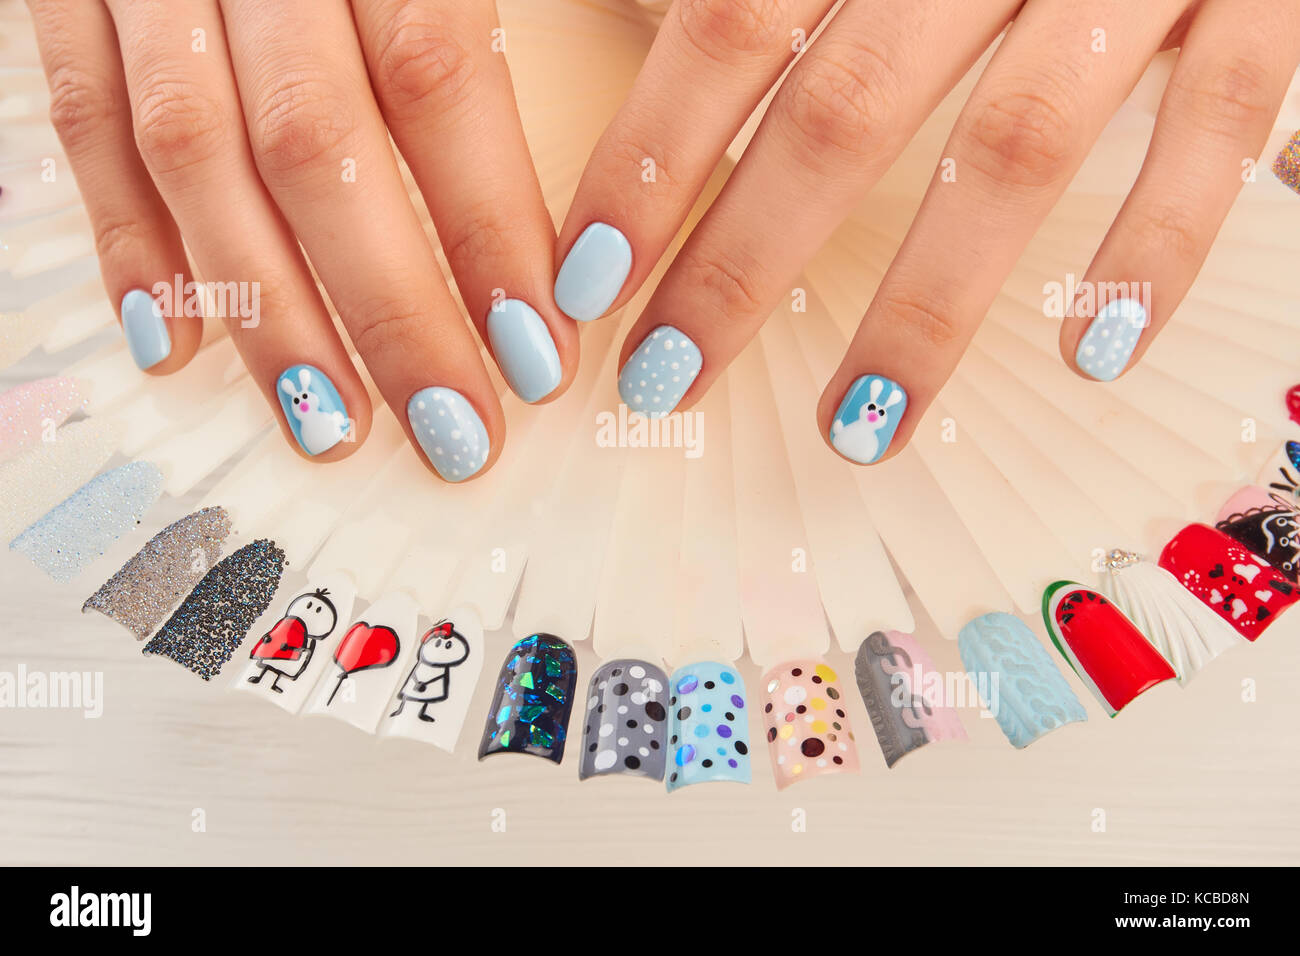 Manicured hands and nail art samples Stock Photo: 162521093 - Alamy